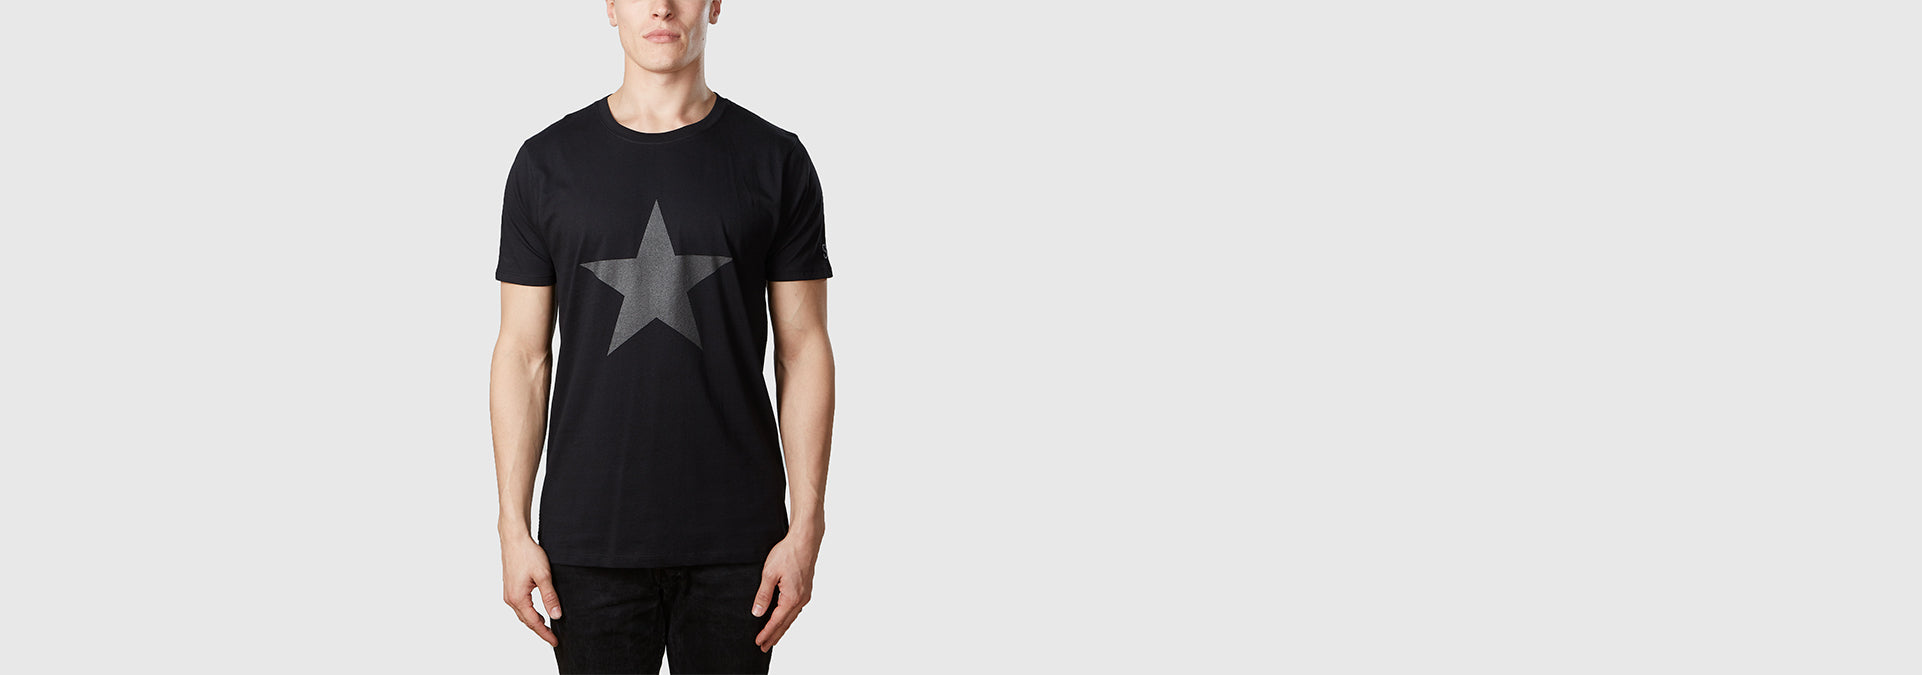 Graphite Star Organic Cotton T-Shirt Black